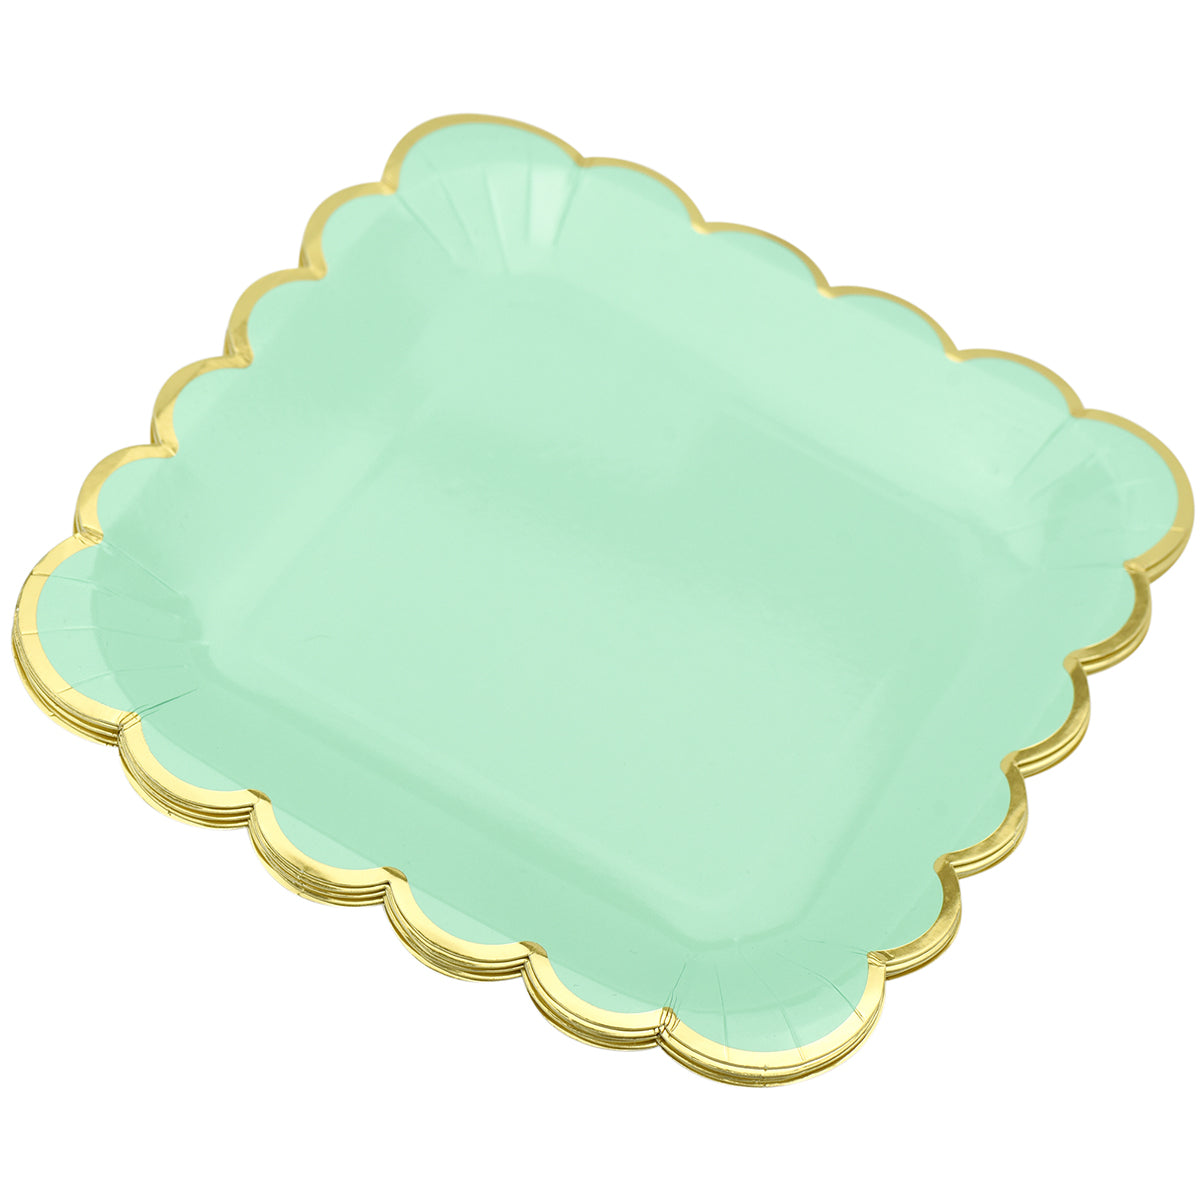 24 stacked gold wavy edge mint green square paper plates display in a white background